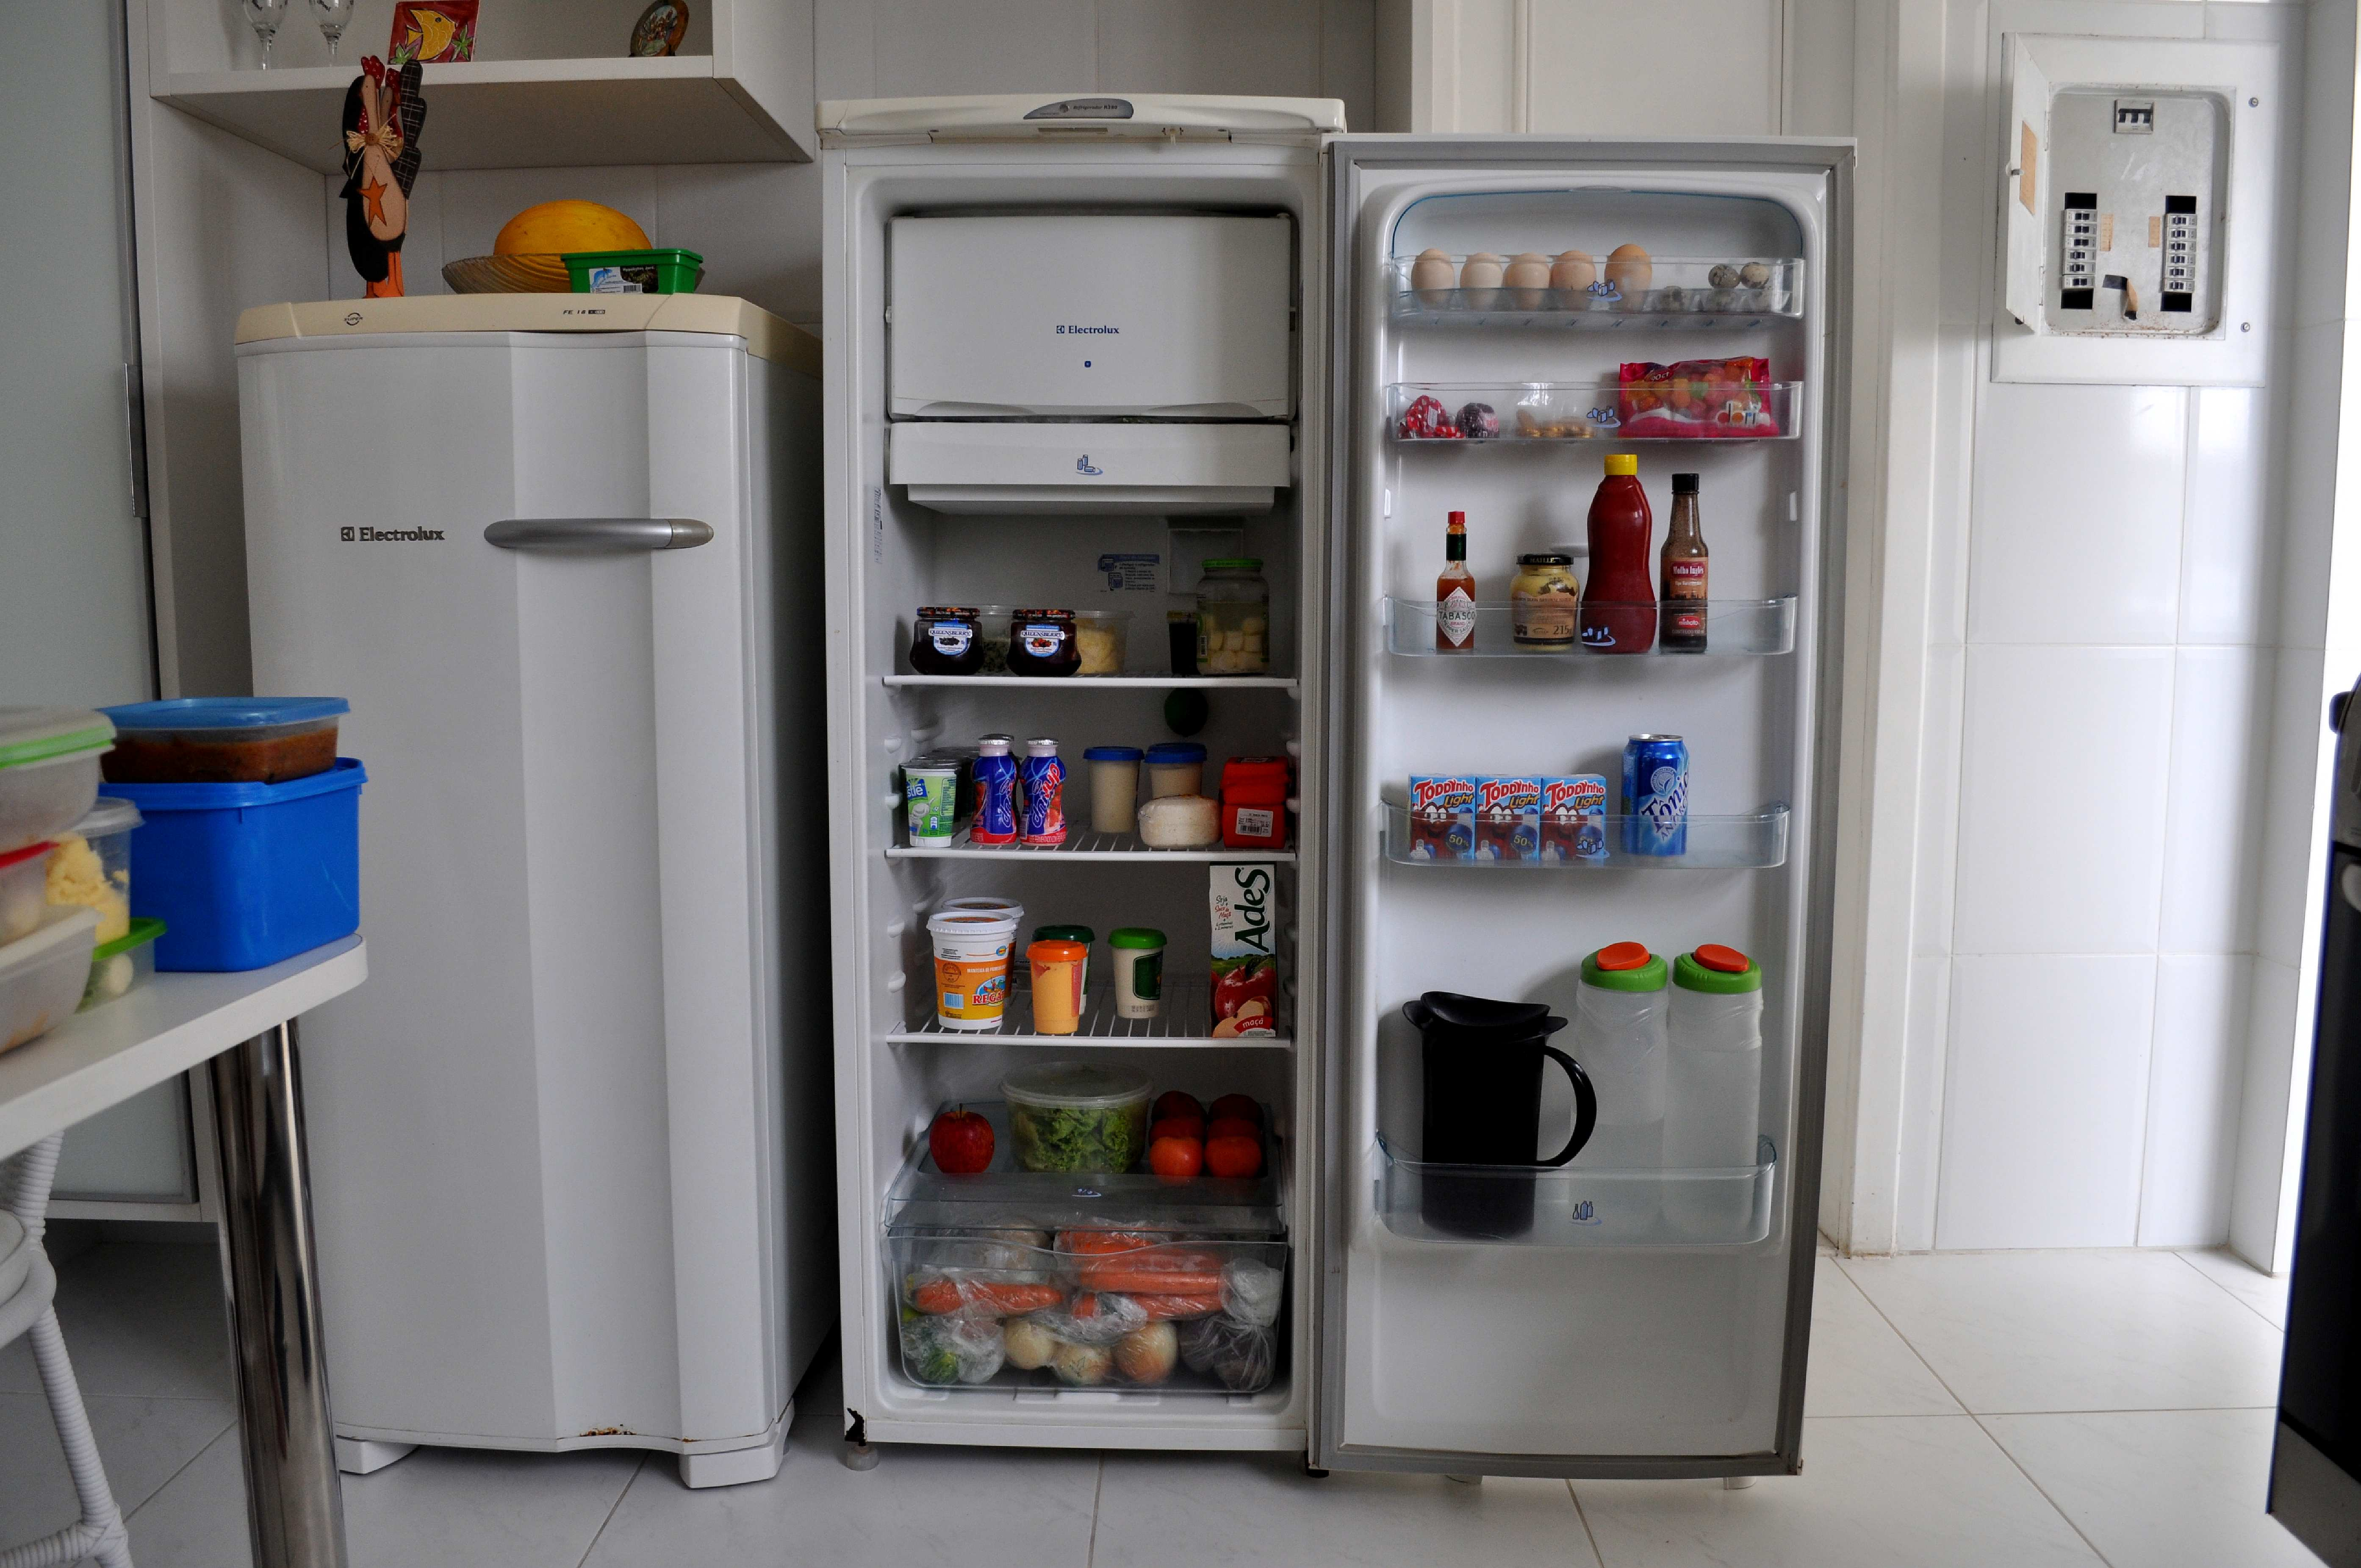 Fridge with groceries